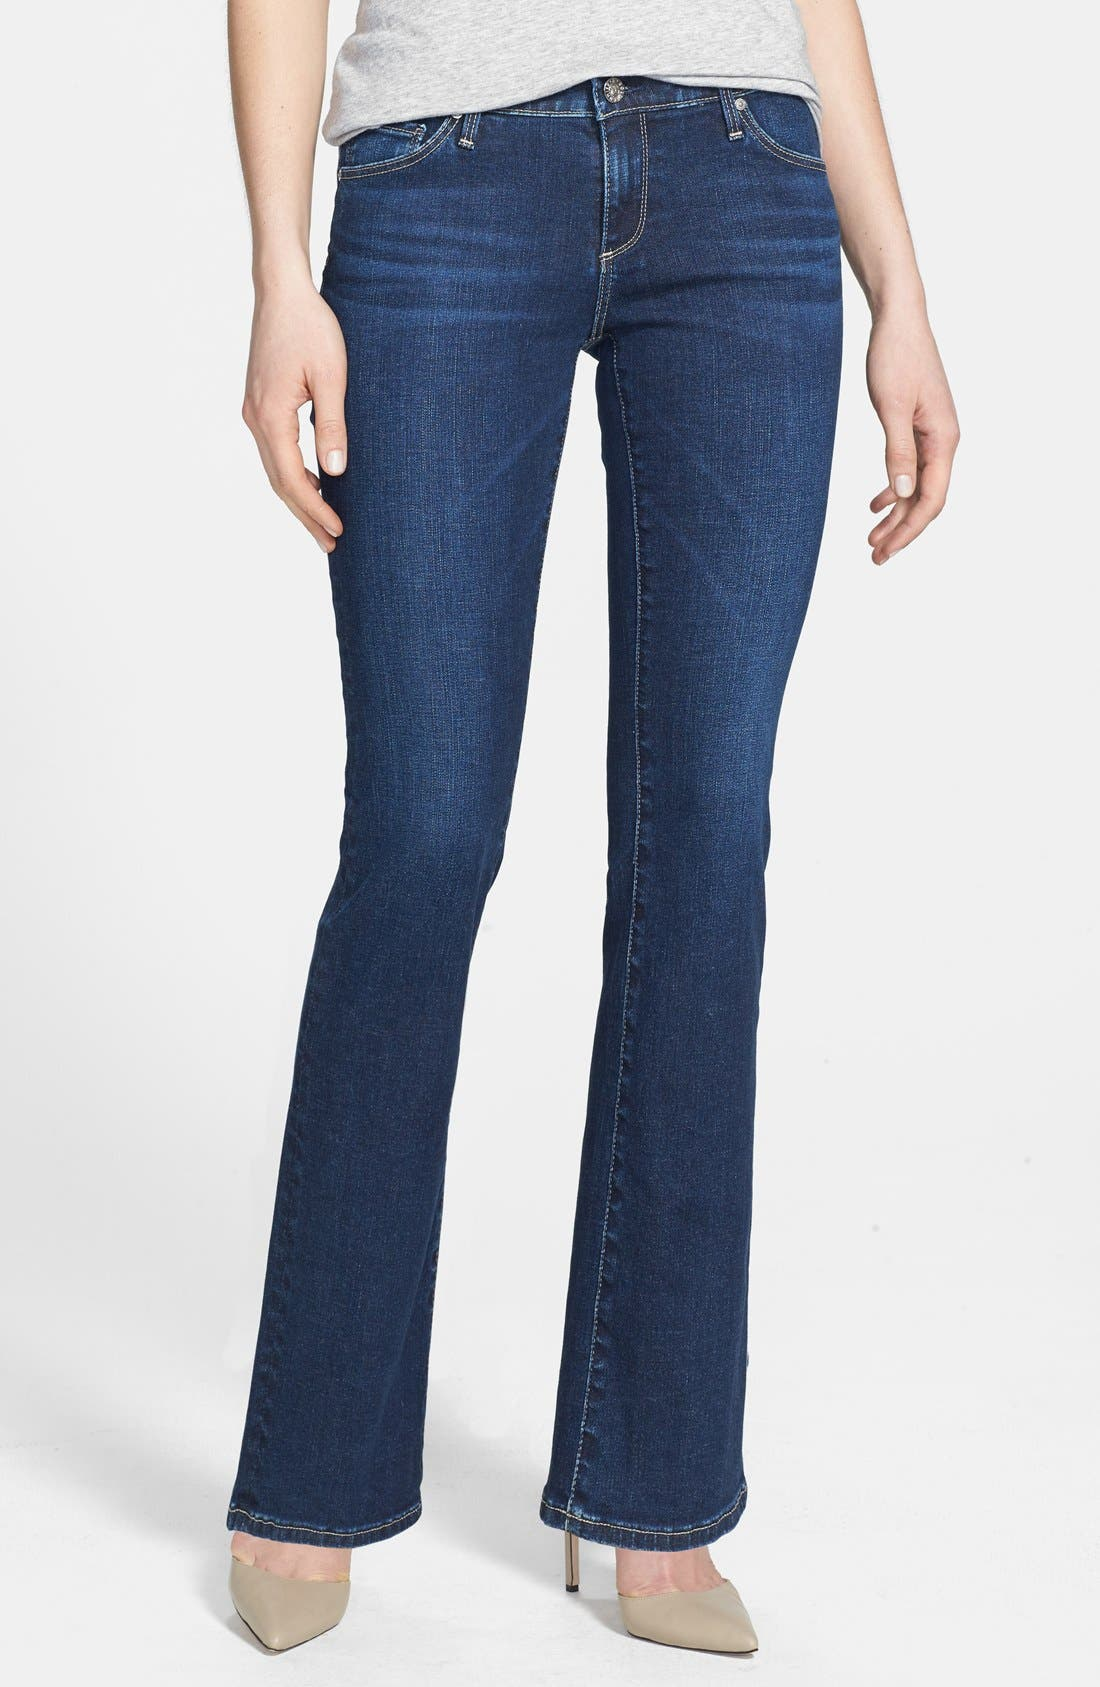 Alternate Image 1 Selected - AG 'Angelina' Bootcut Jeans (Petite) (Estate)